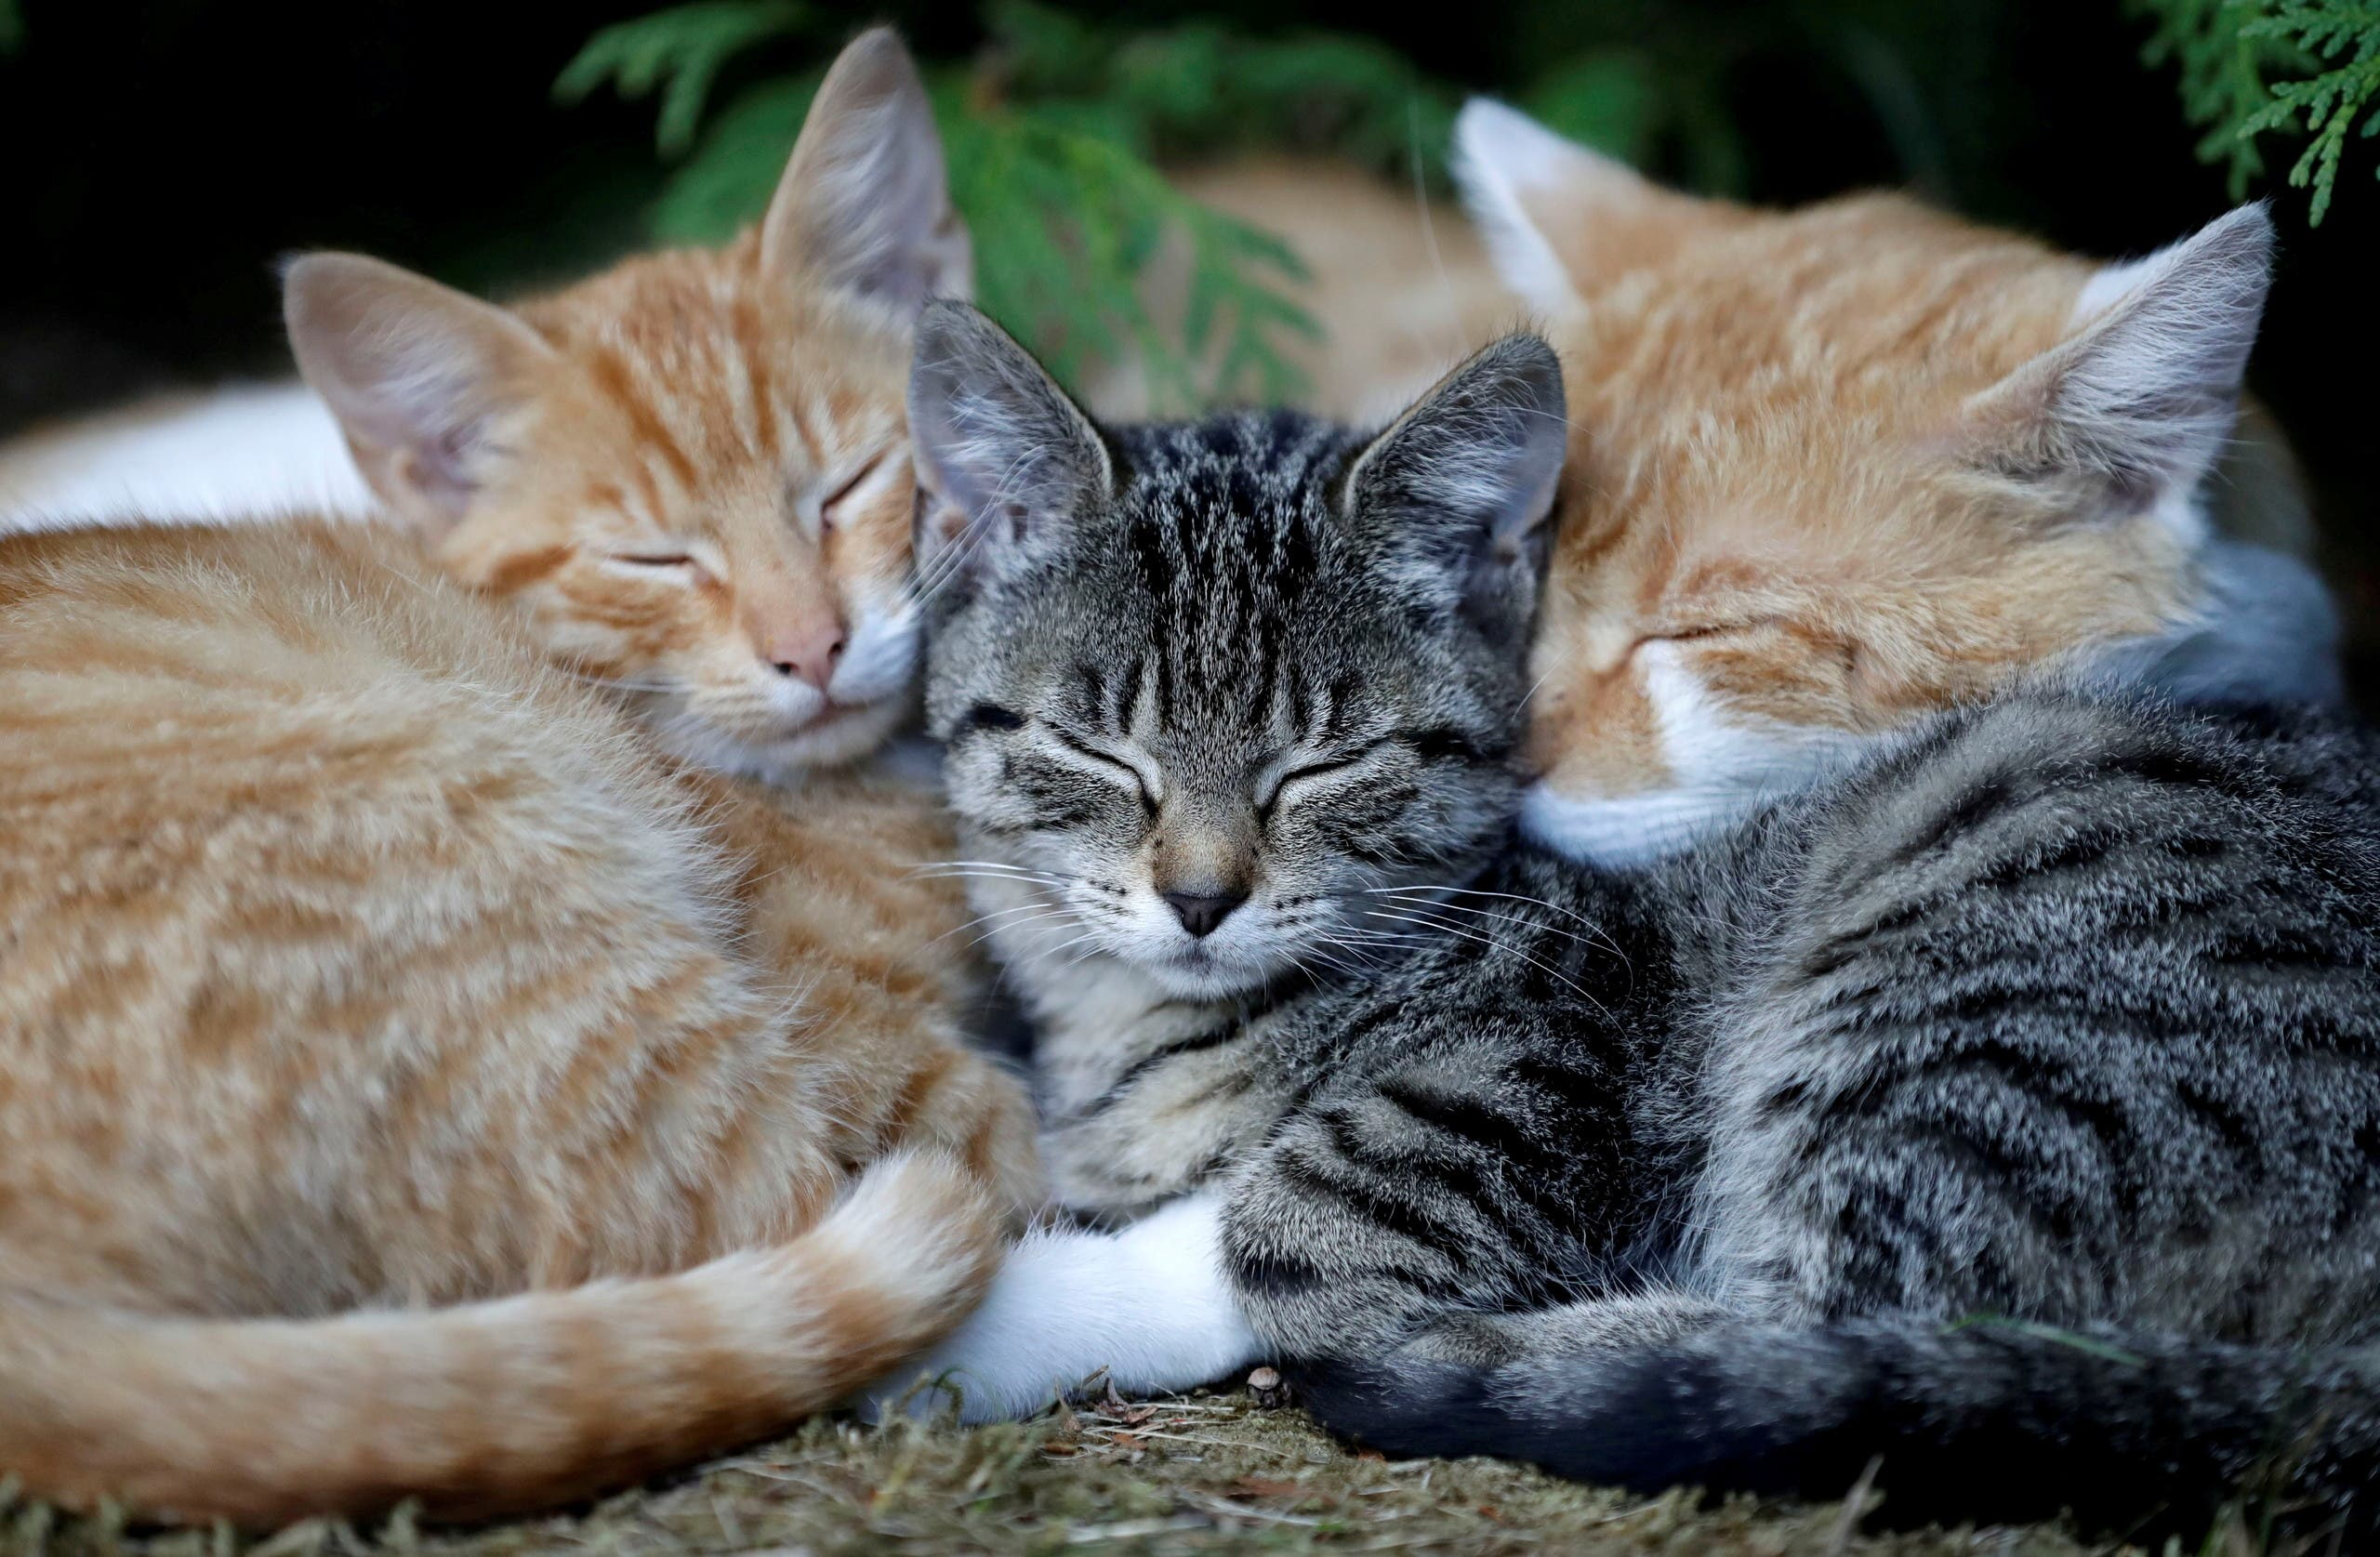 Cats sleep in the village of Krompach near the town of Cvikov, Czech Republic, August 26, 2018. (File Photo: Reuters)